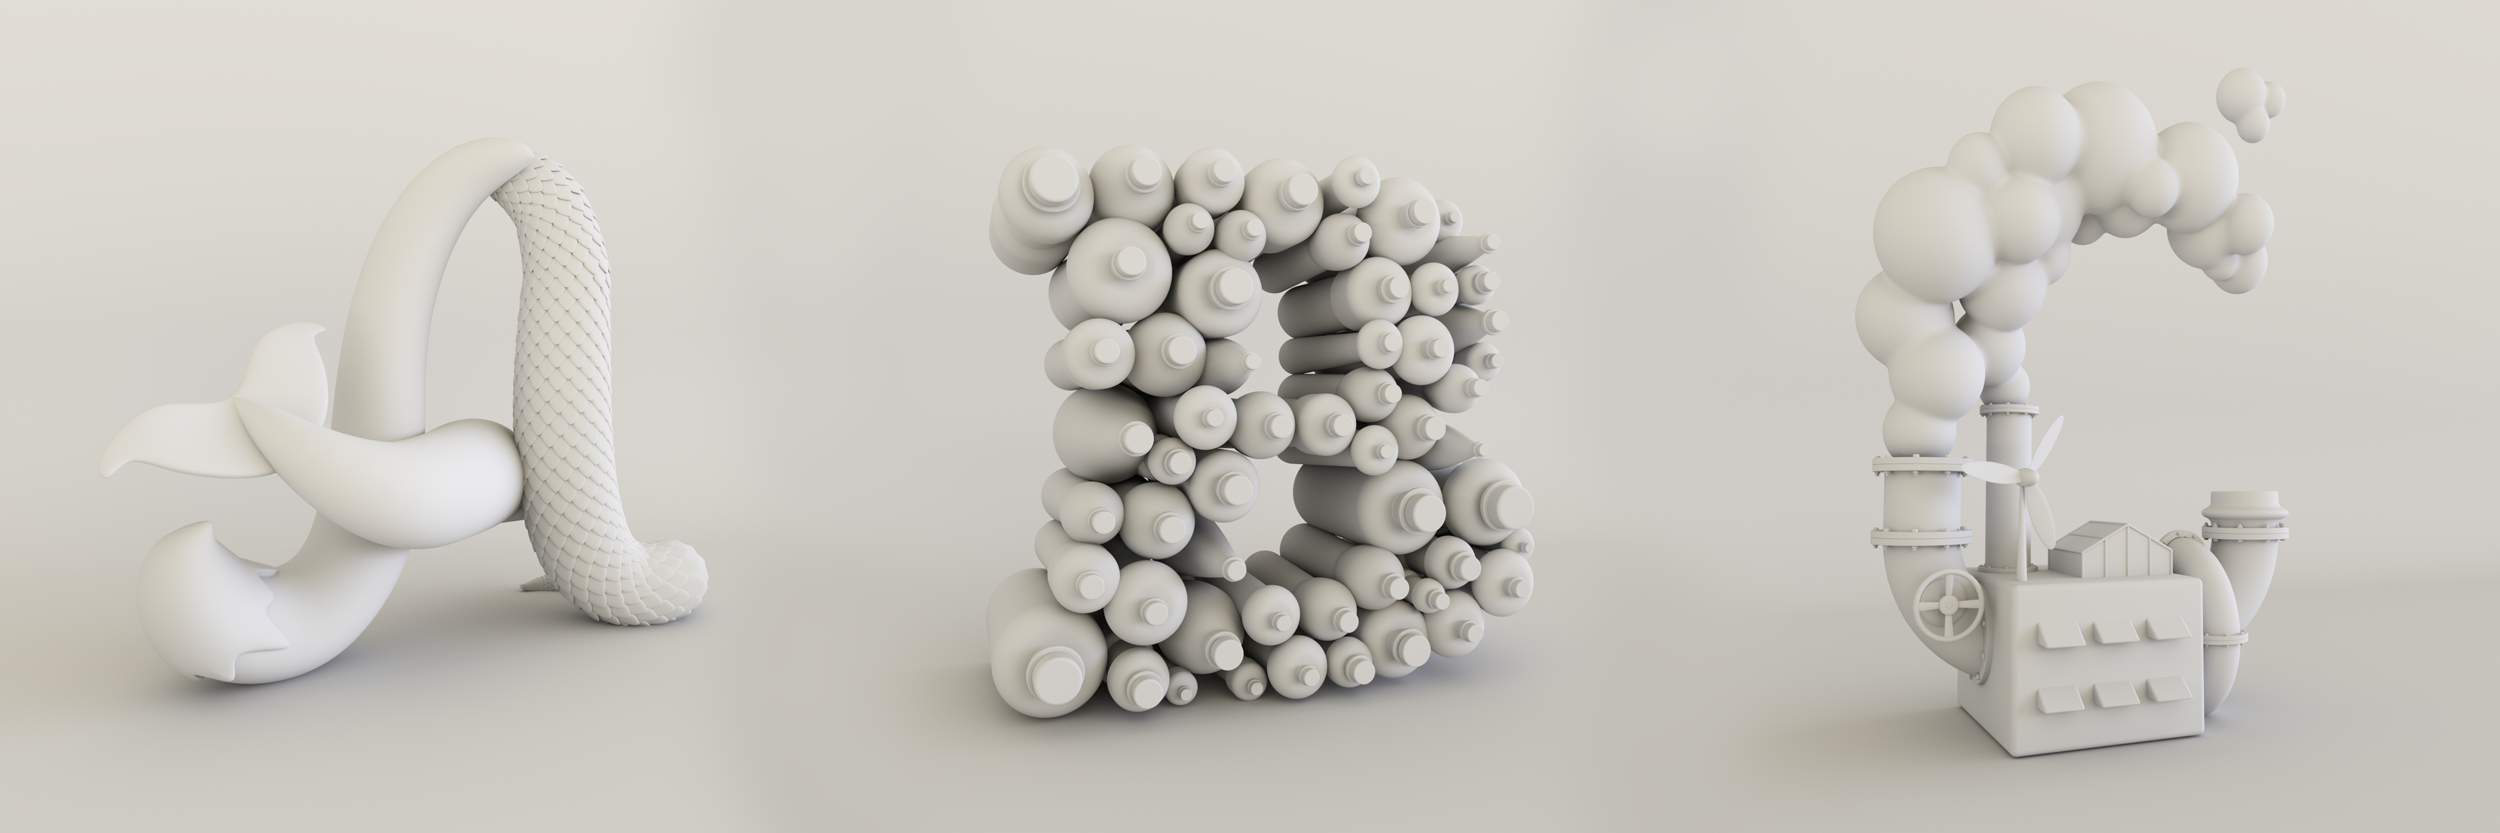 Method Home 3D type clay models by Noah Camp